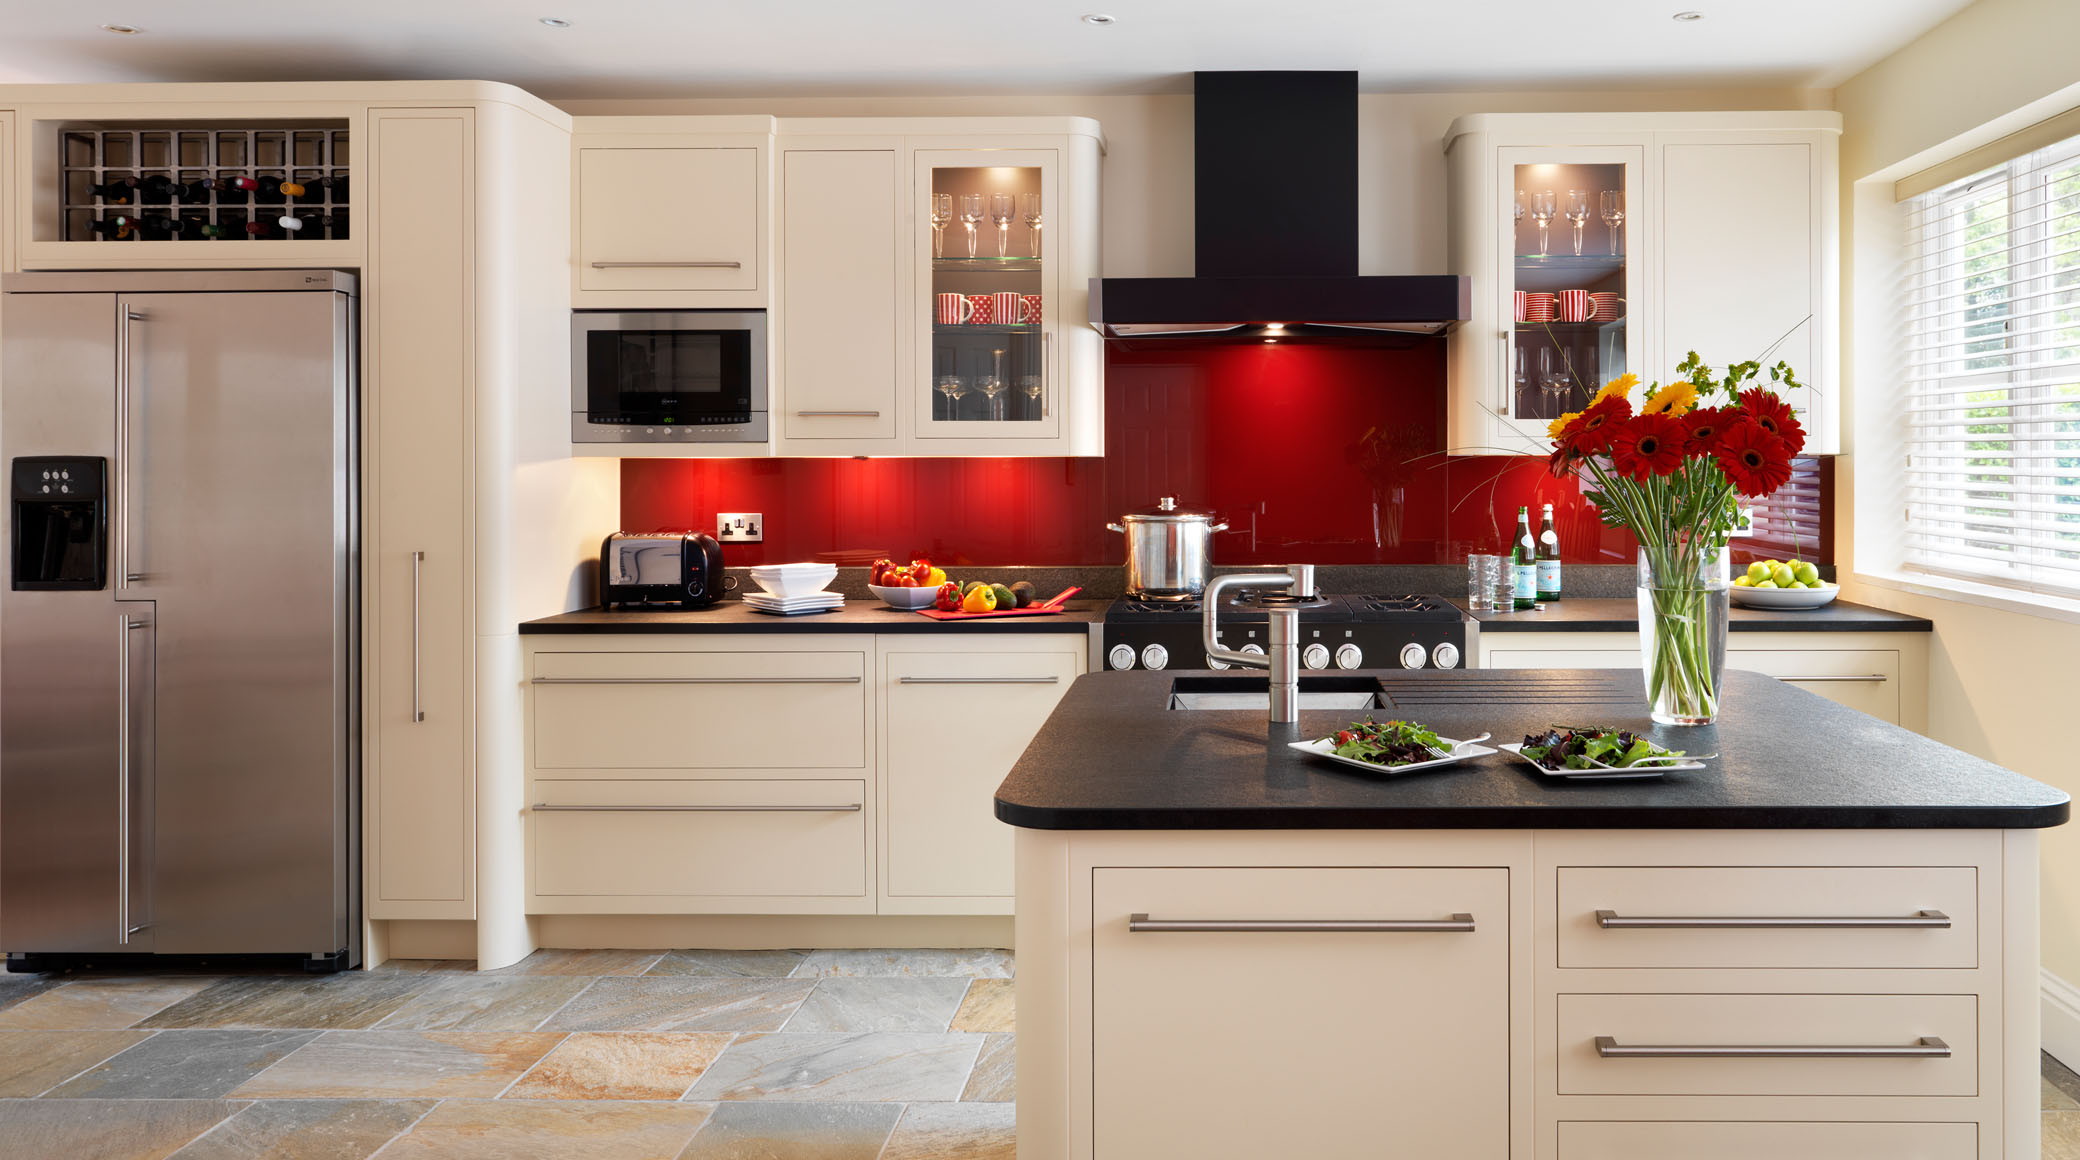 Red Kitchens Harvey Jones Linear Kitchen With Red Glass Splashback  Like The